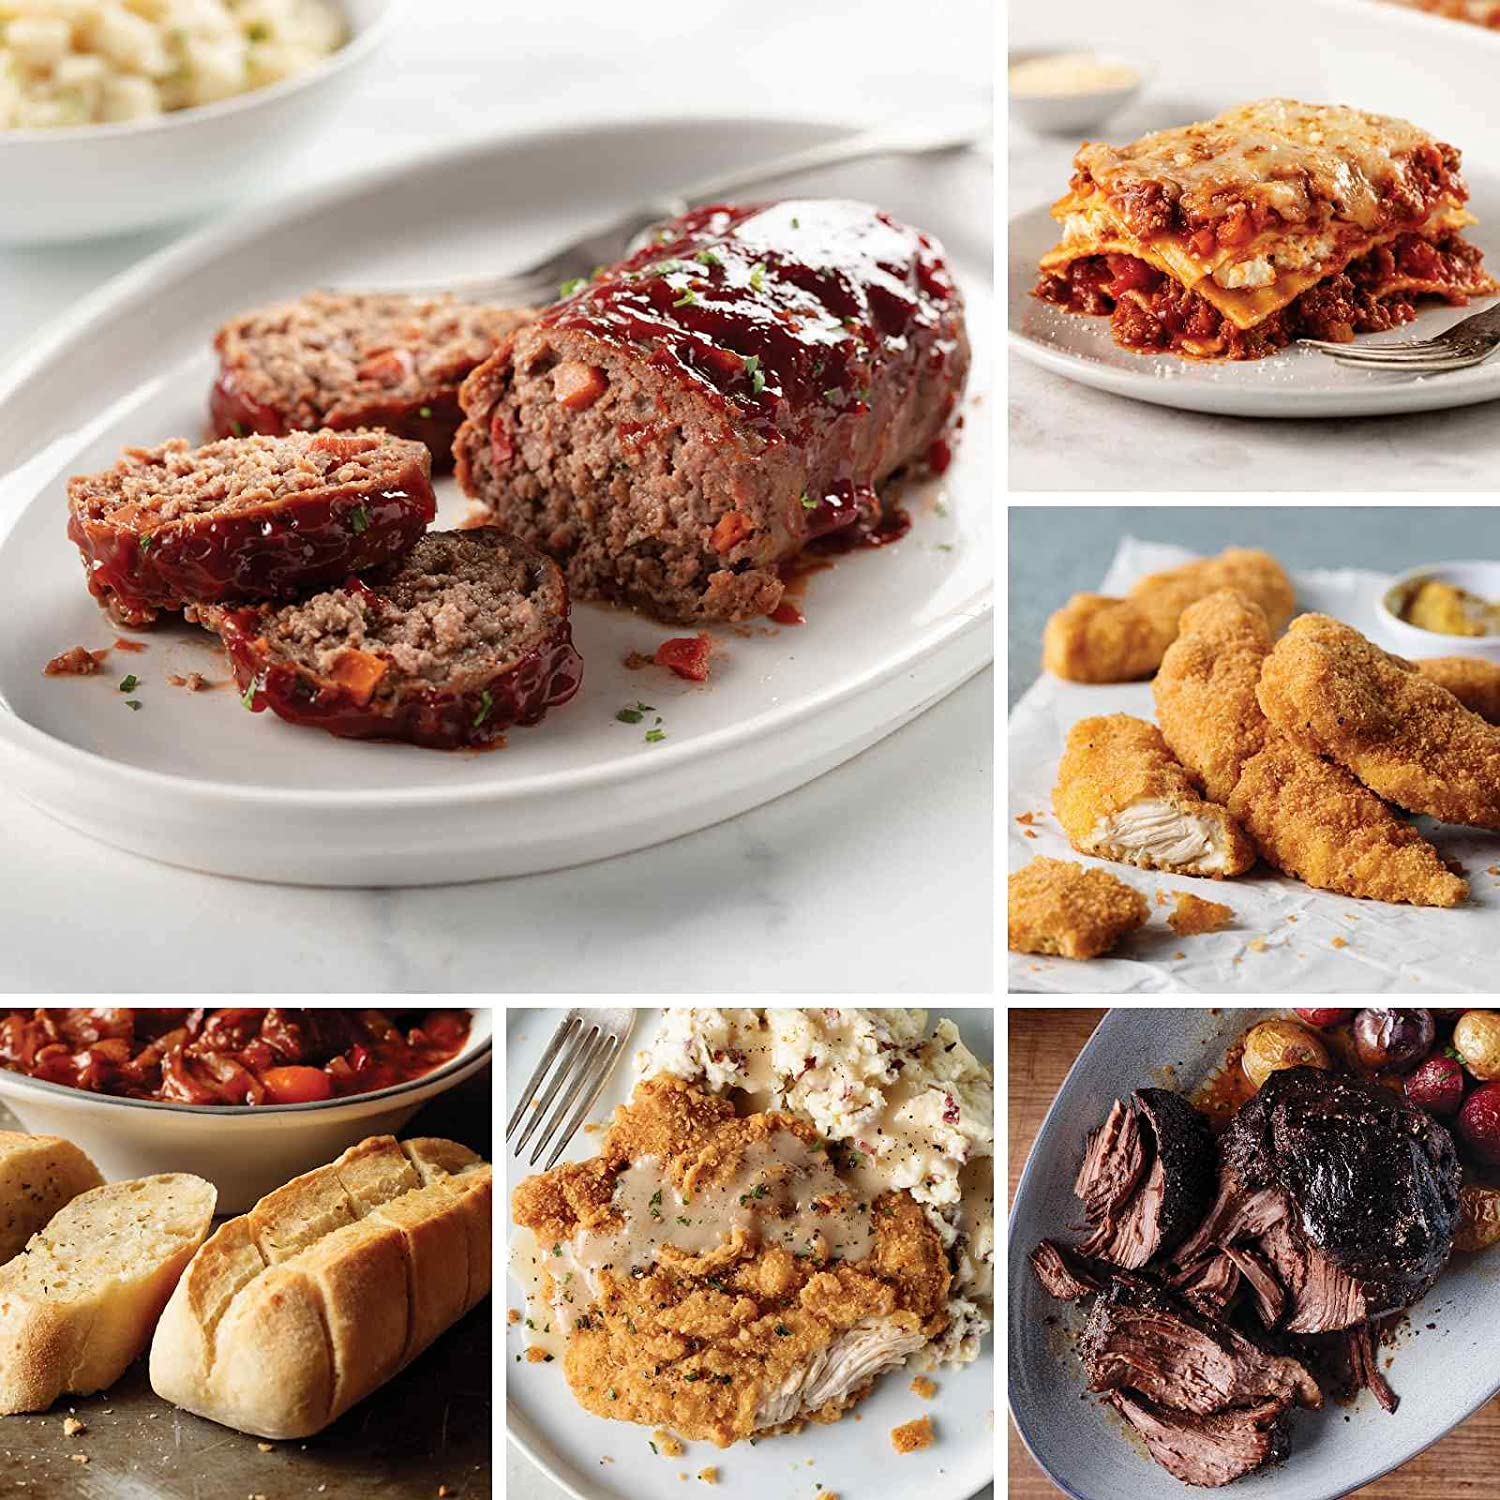 Easy Comfort Favorites from Omaha Steaks (Homestyle Meatloaf, Mini Baguettes with Garlic Butter, Chicken Fried Chicken, Fully Cooked Pot Roast, Italian Chicken Fingers, and more)